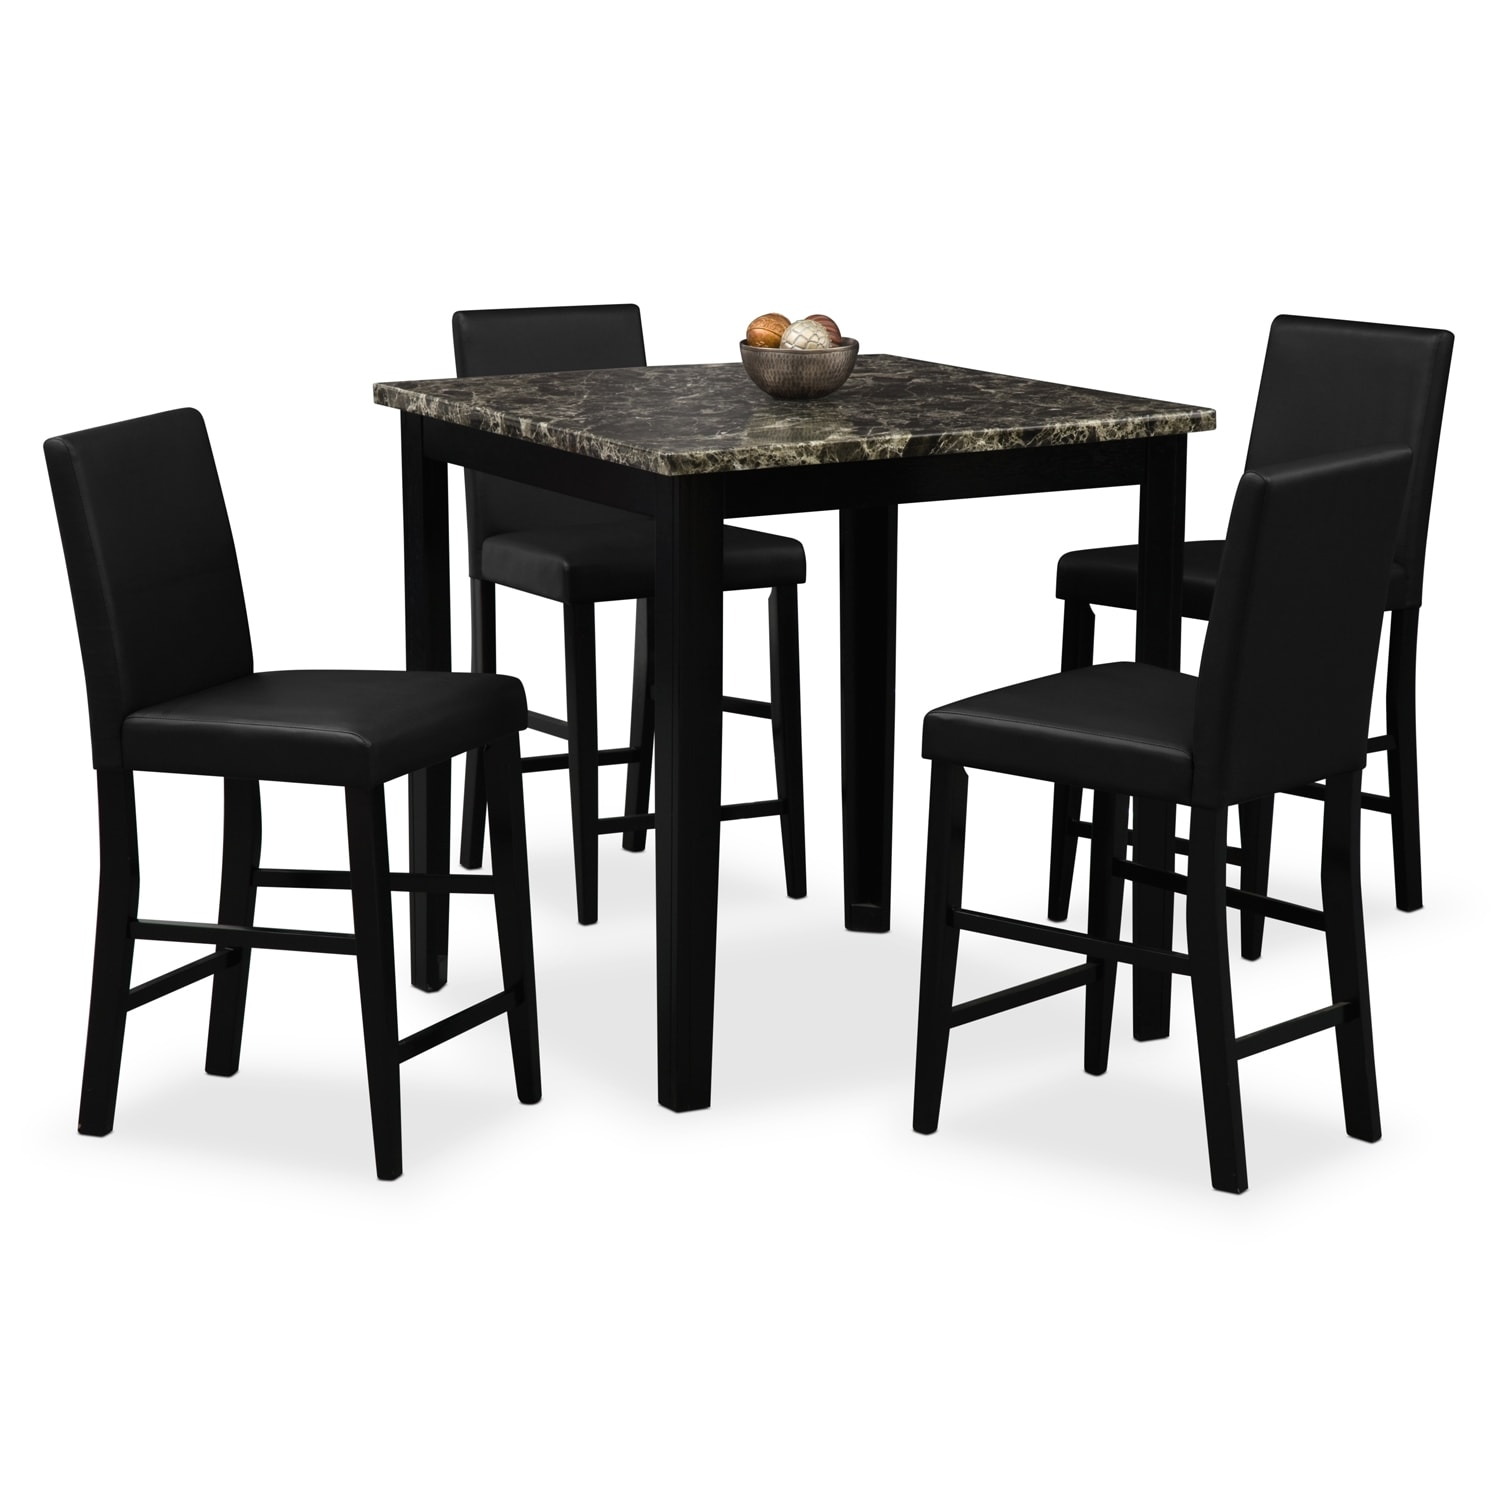 Shadow counter height table and 4 chairs black value for High dining table